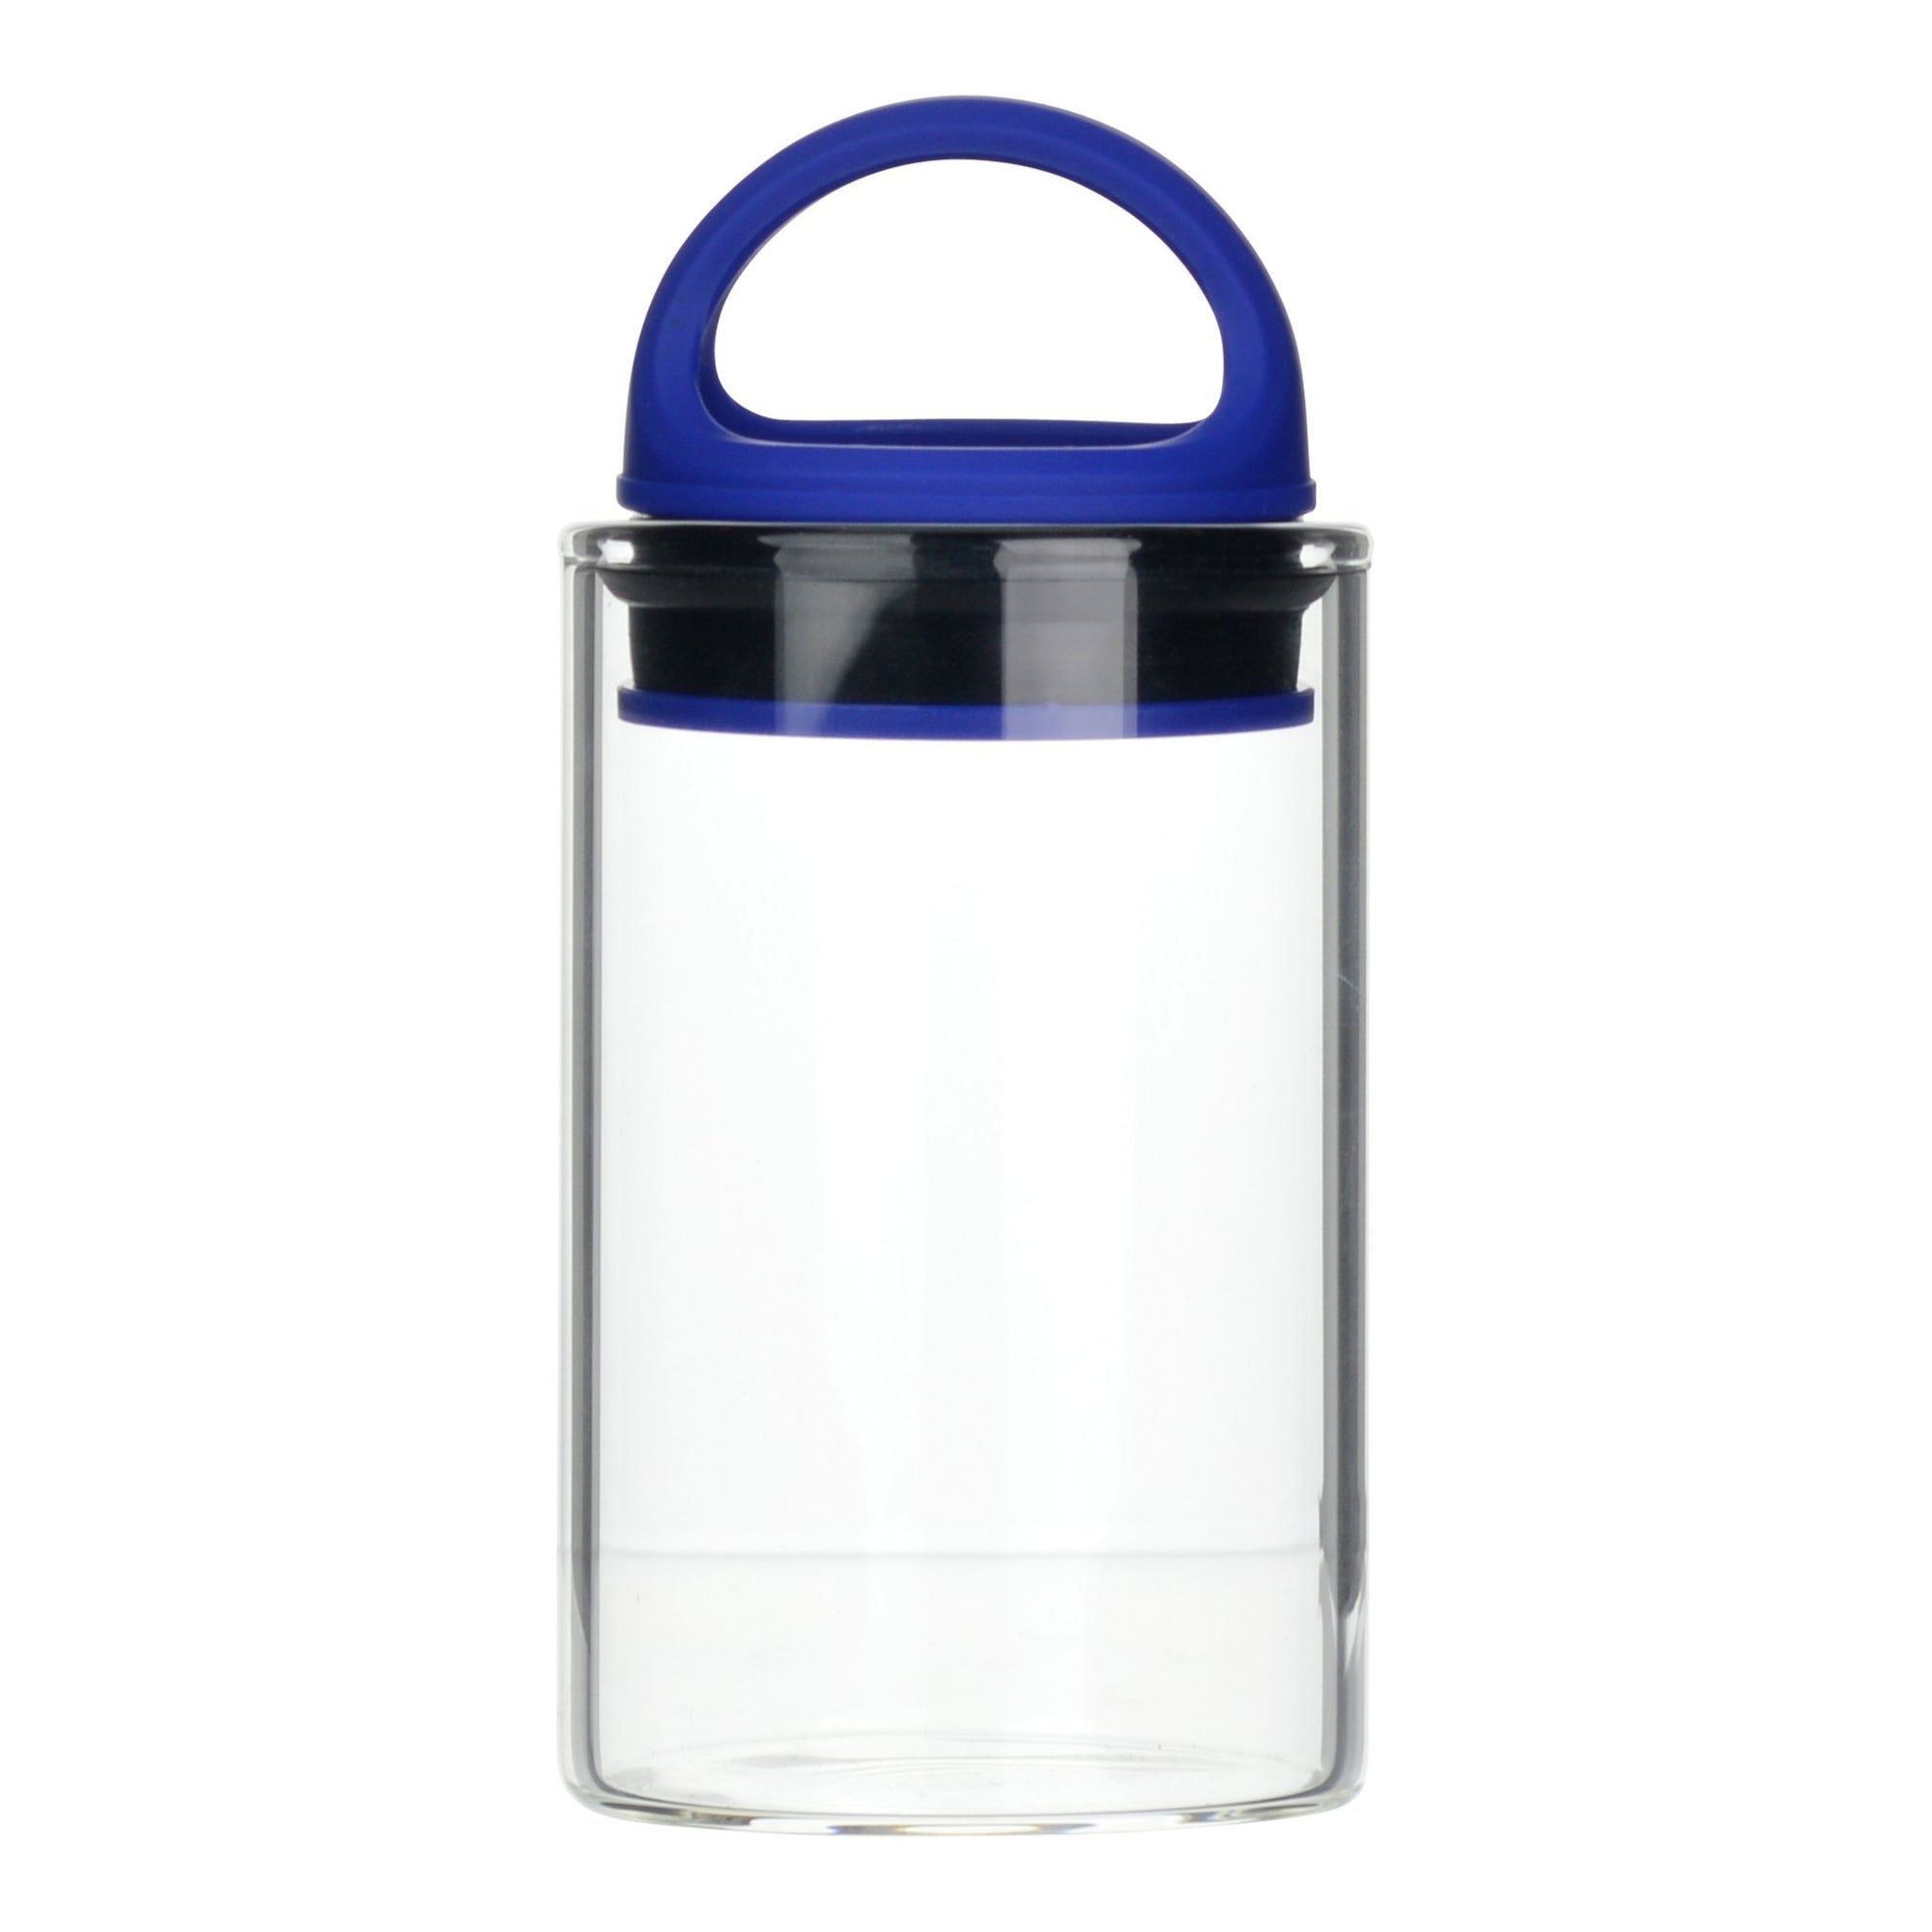 Blue clear glass stash jar storage container vacuum seal easy-to-carry with curved handle